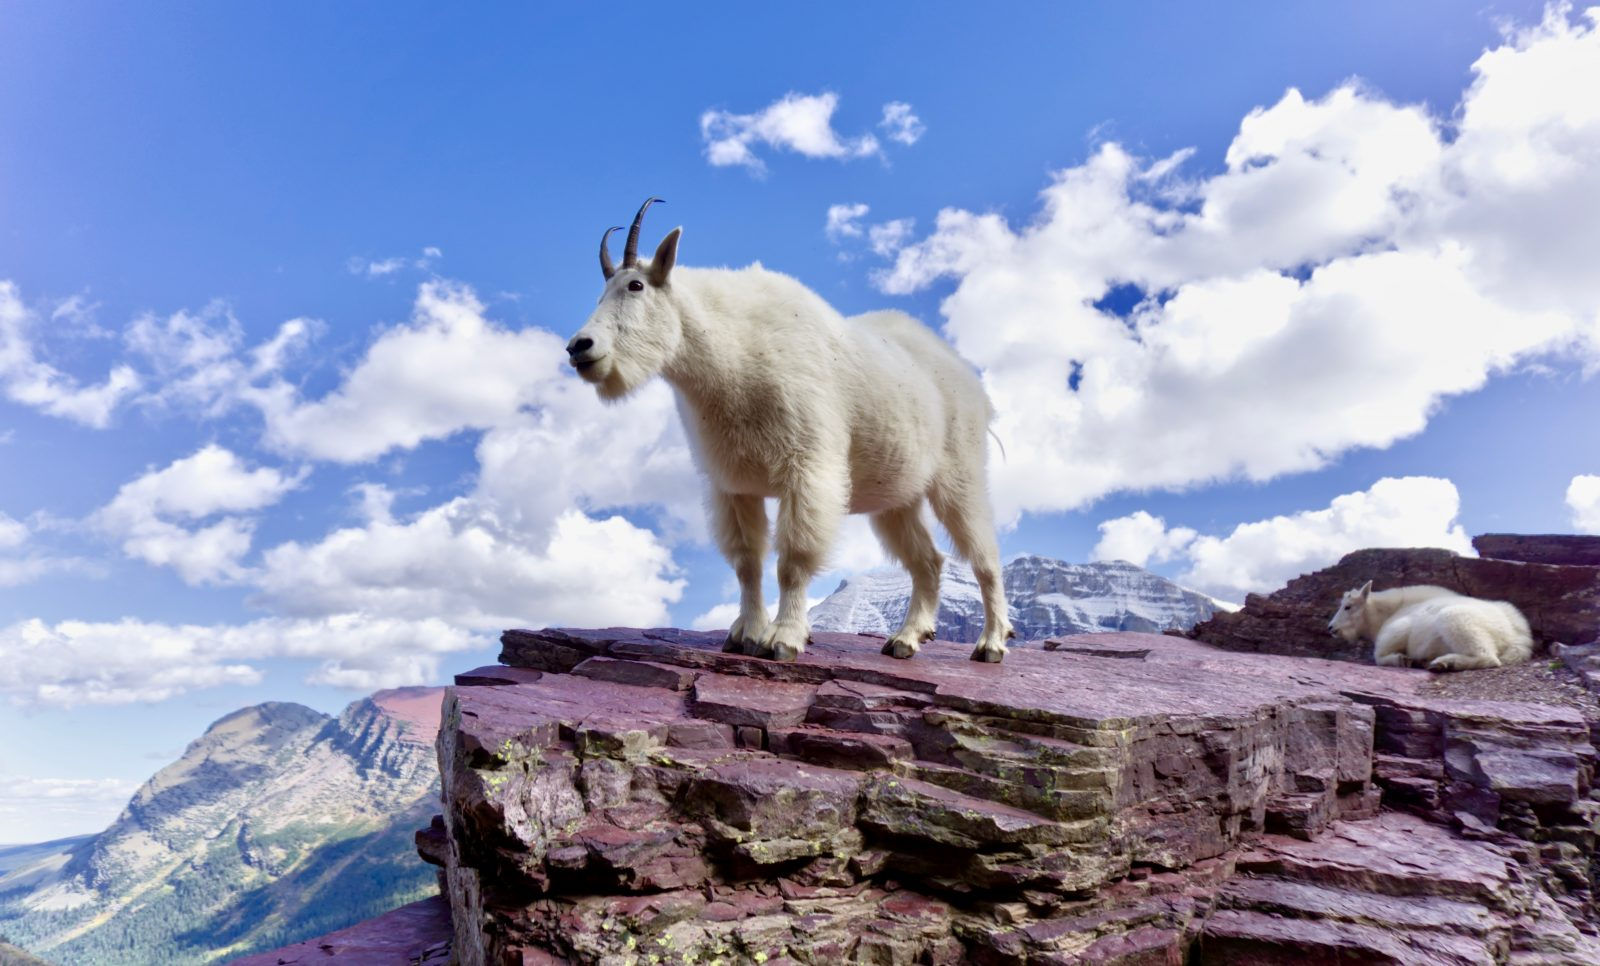 The Goats of Glacier